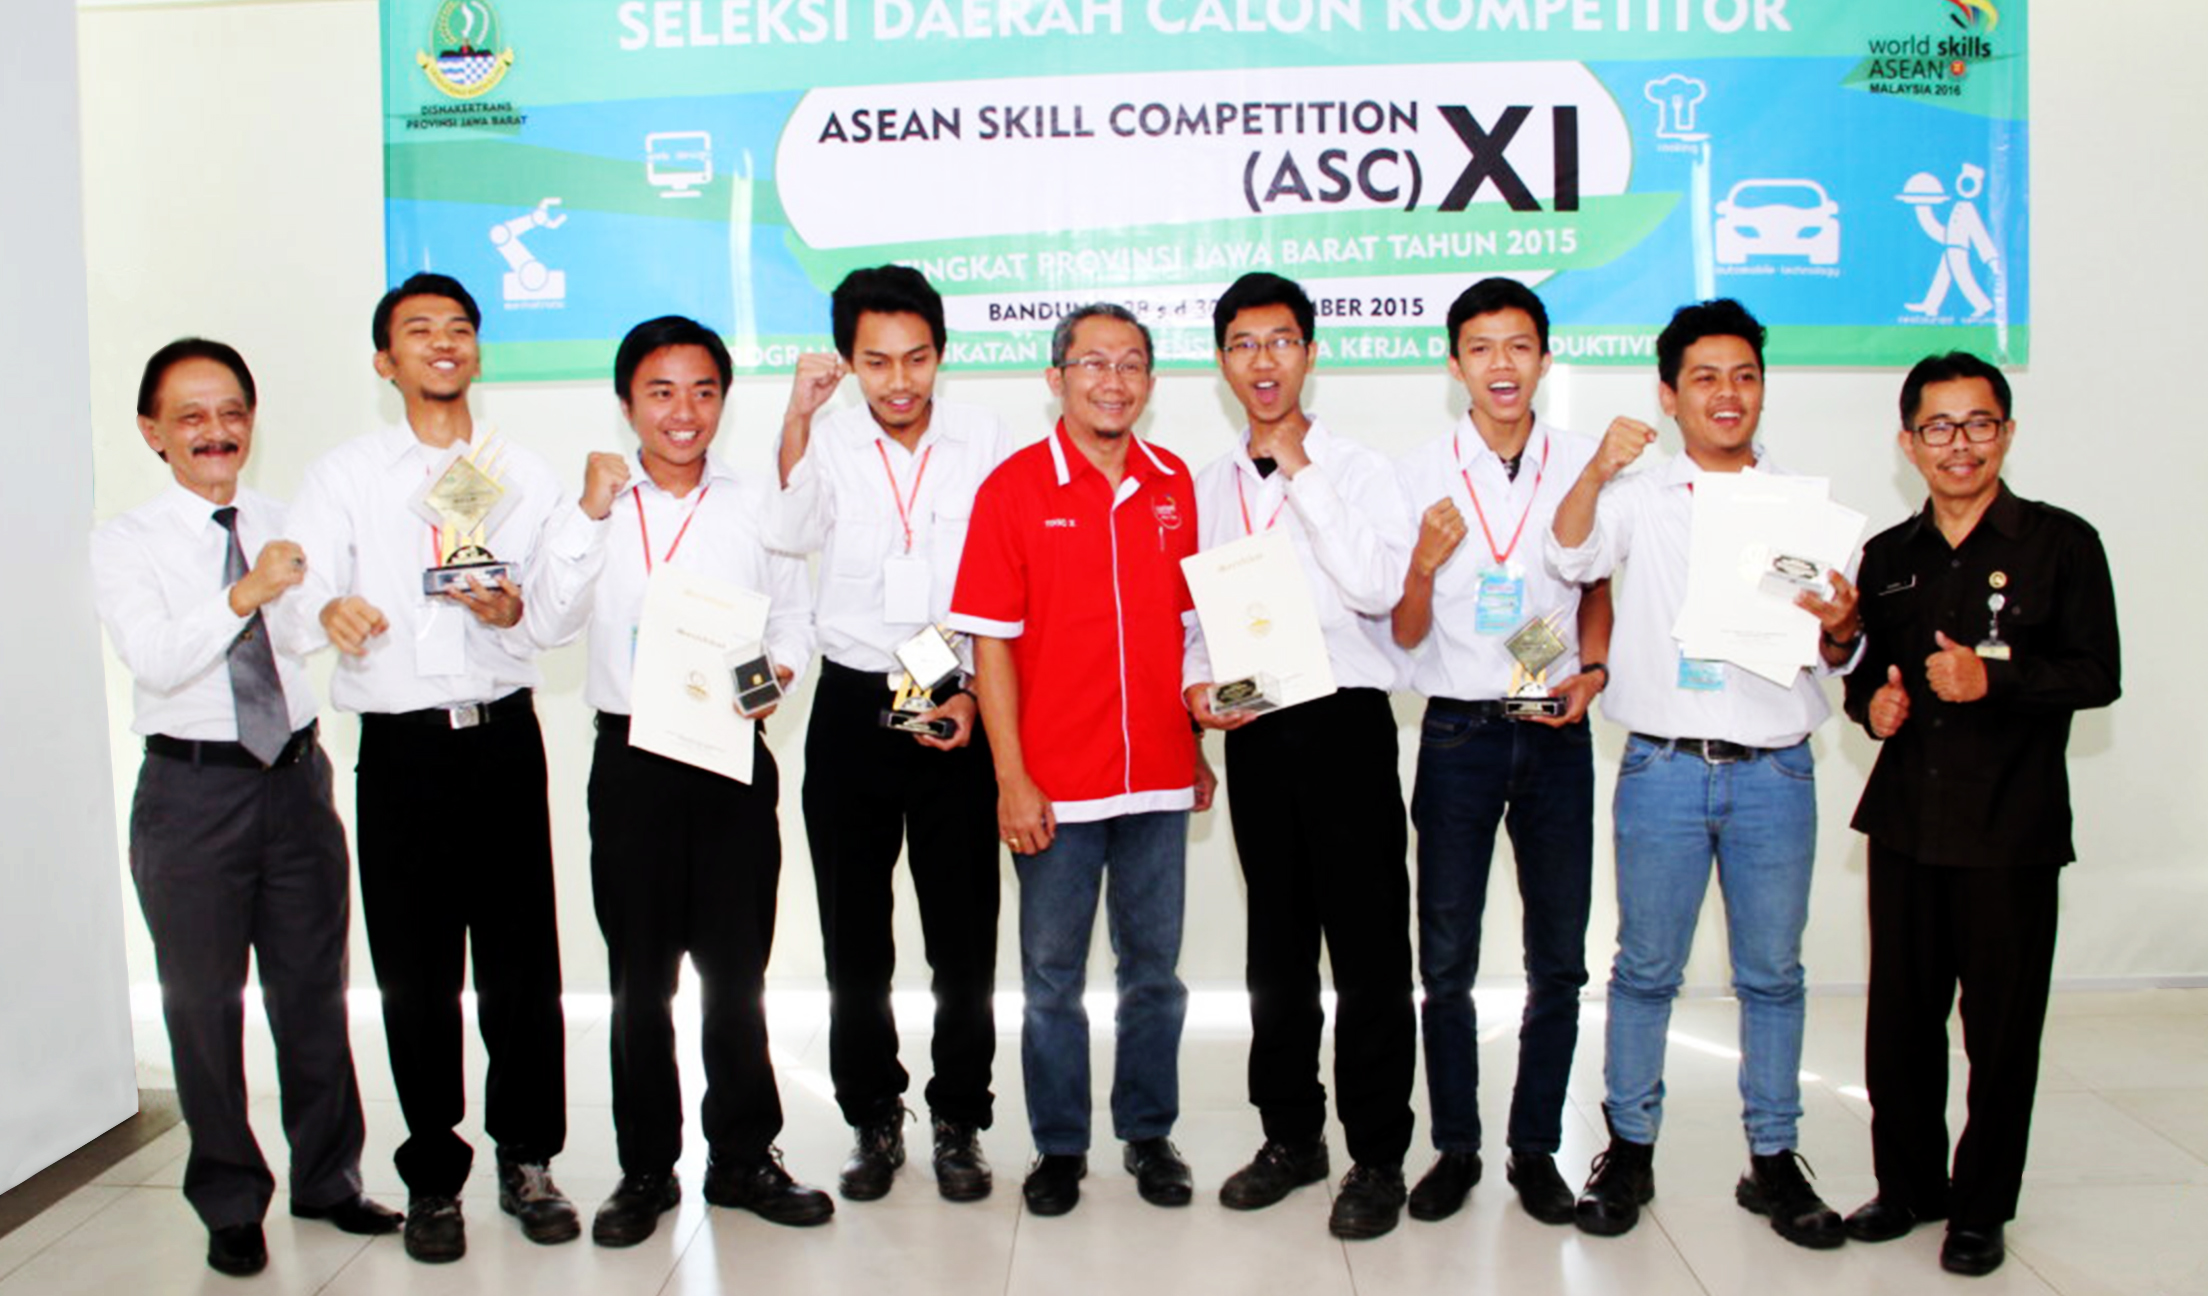 <h1>ASEAN SKILL COMPETITION</h1>  <h4>Mechantronic</h4>